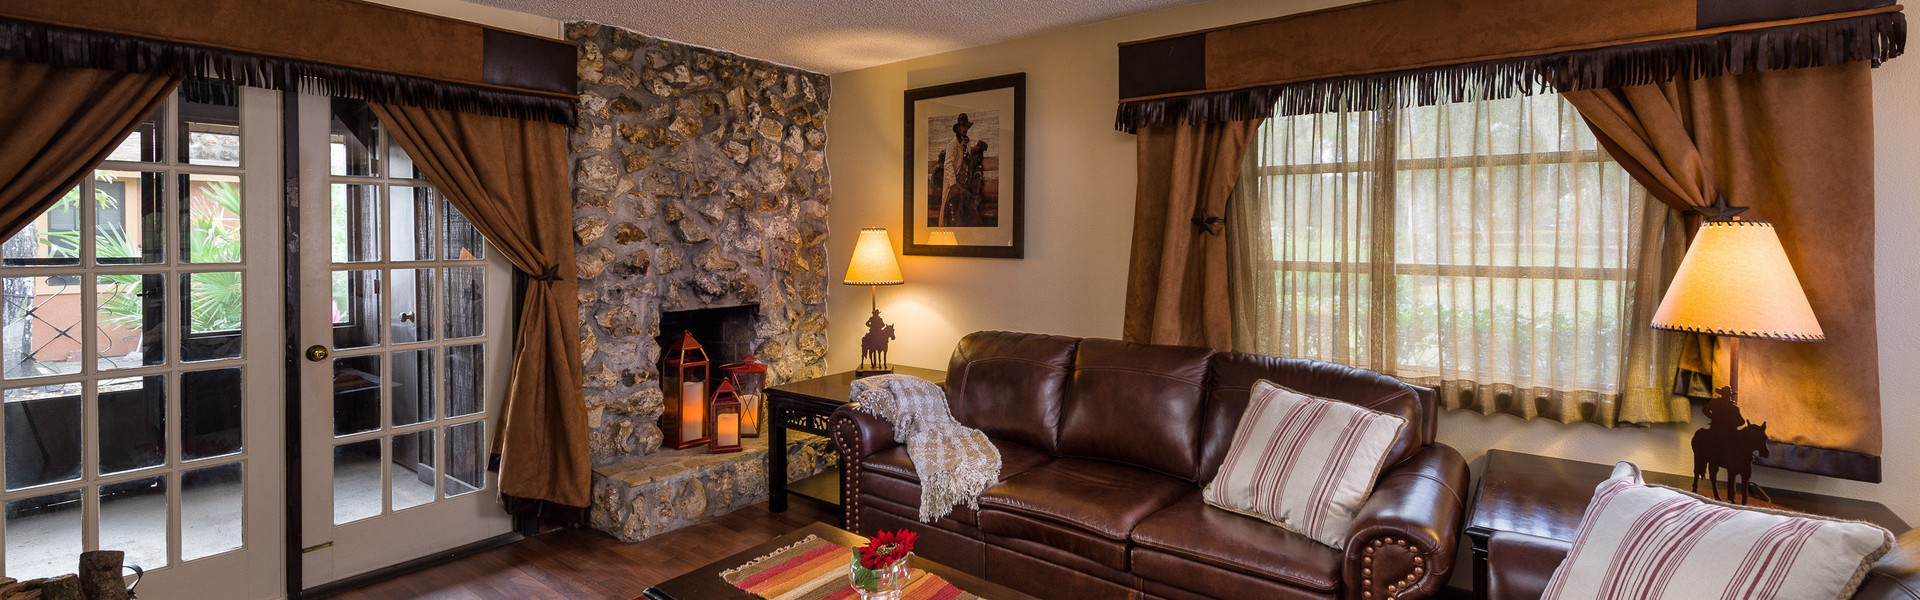 Deluxe Accommodations at an Authentic Florida Dude Ranch | Westgate River Ranch Resort & Rodeo